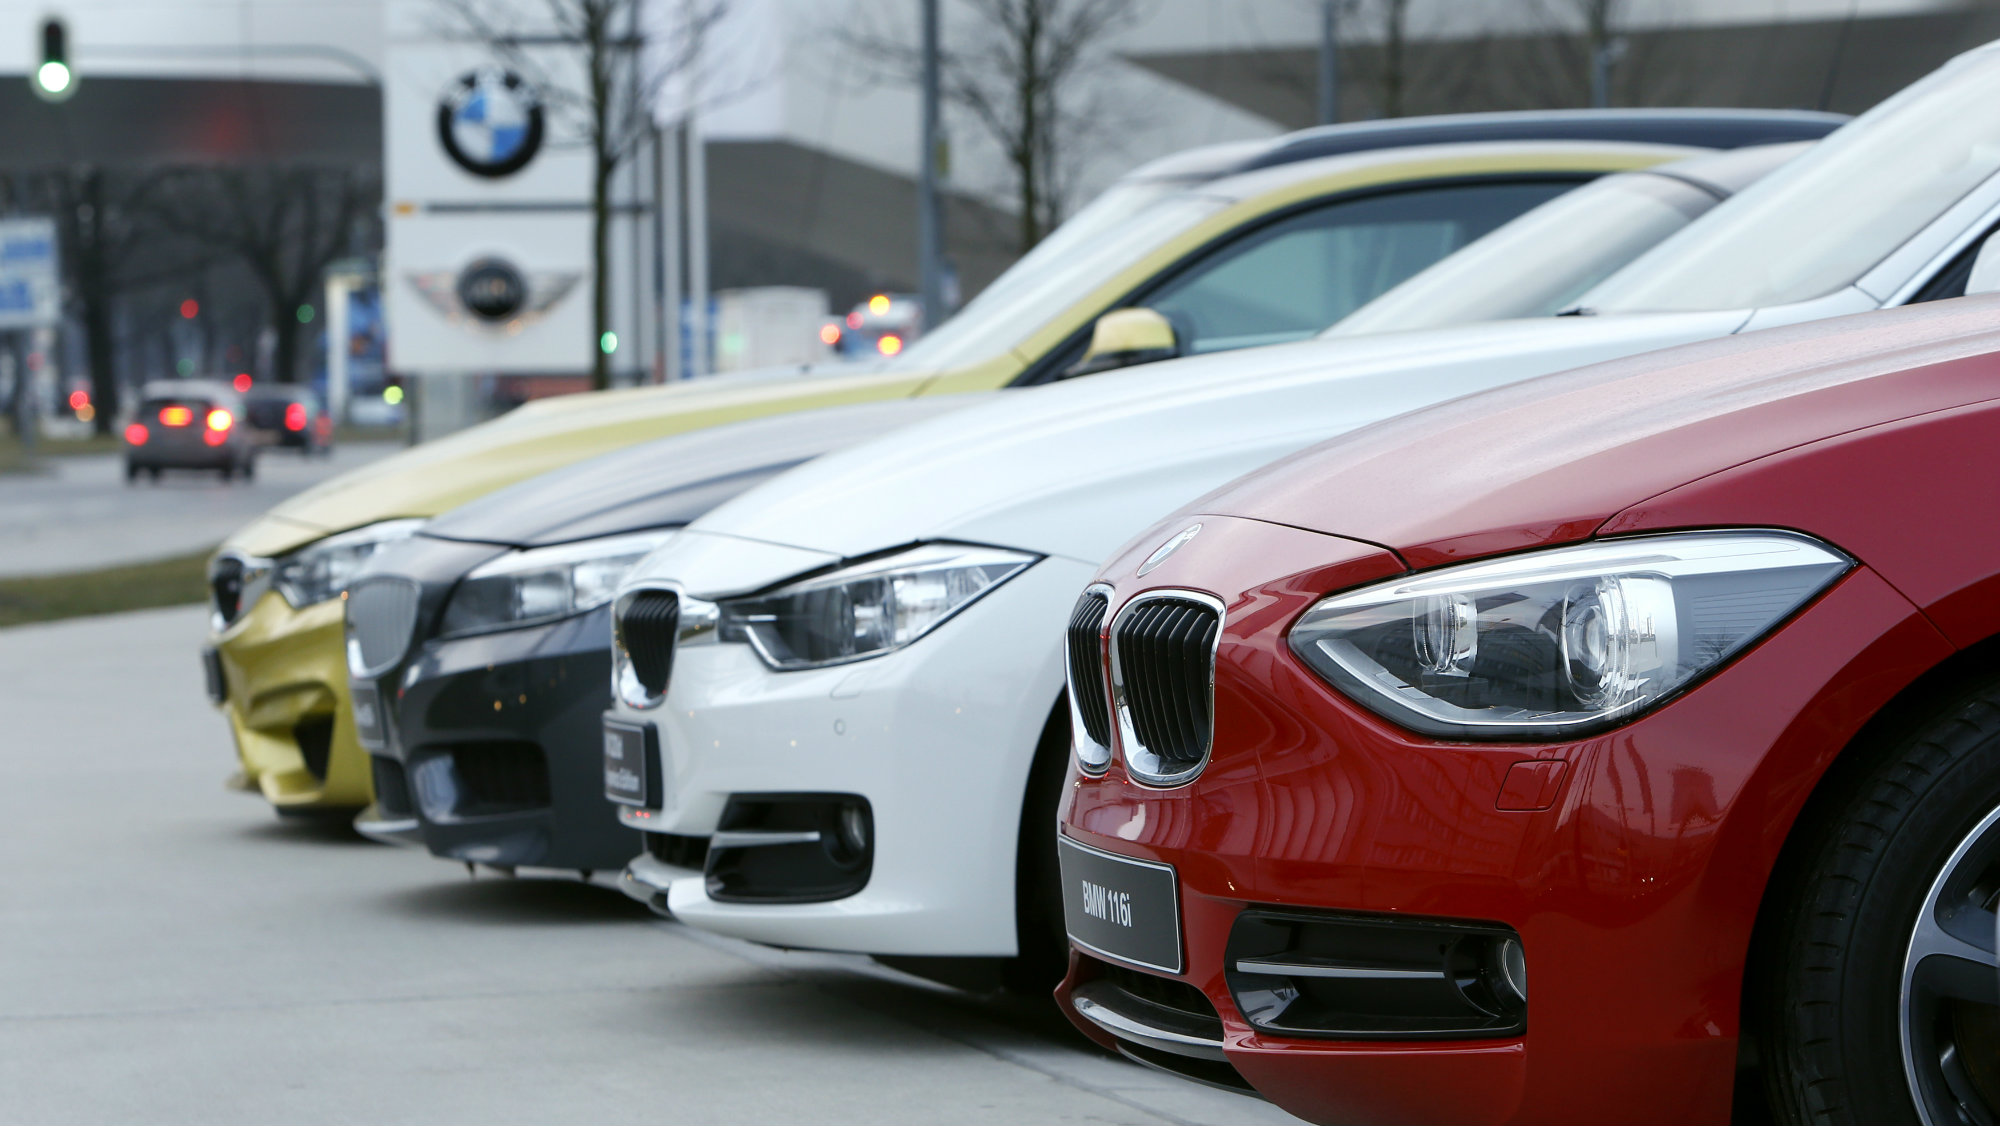 BMW's in different colours are placed near the headquarters of German luxury car maker BMW in Munich March 17, 2015. BMW will hold its annual news conference in Munich tomorrow. REUTERS/Michaela Rehle (GERMANY - Tags: TRANSPORT BUSINESS)